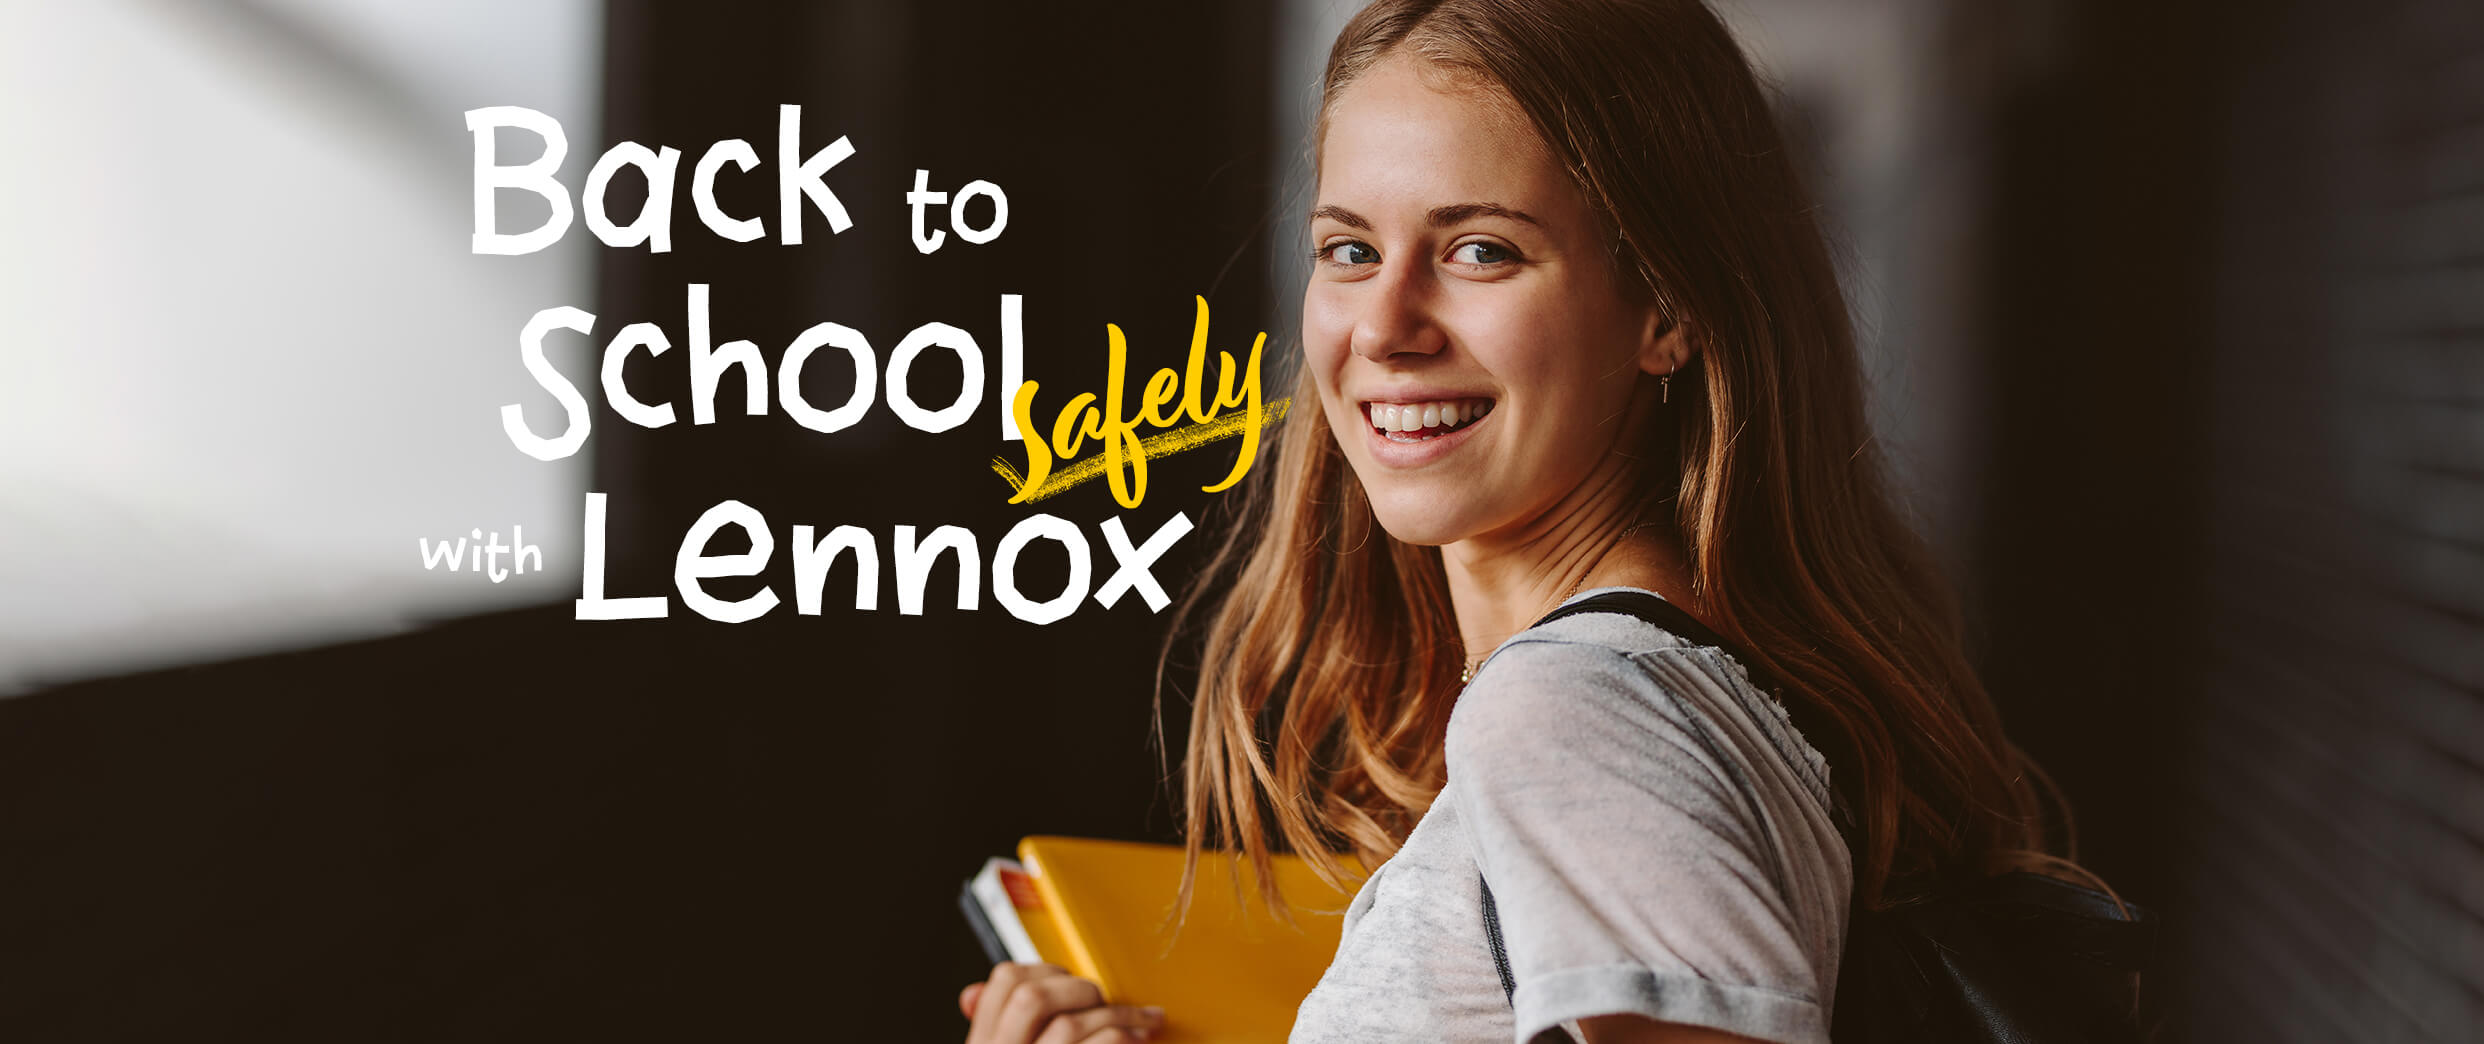 Back to School Safely with Lennox. Visit Lennox Educational for PPE you can trust